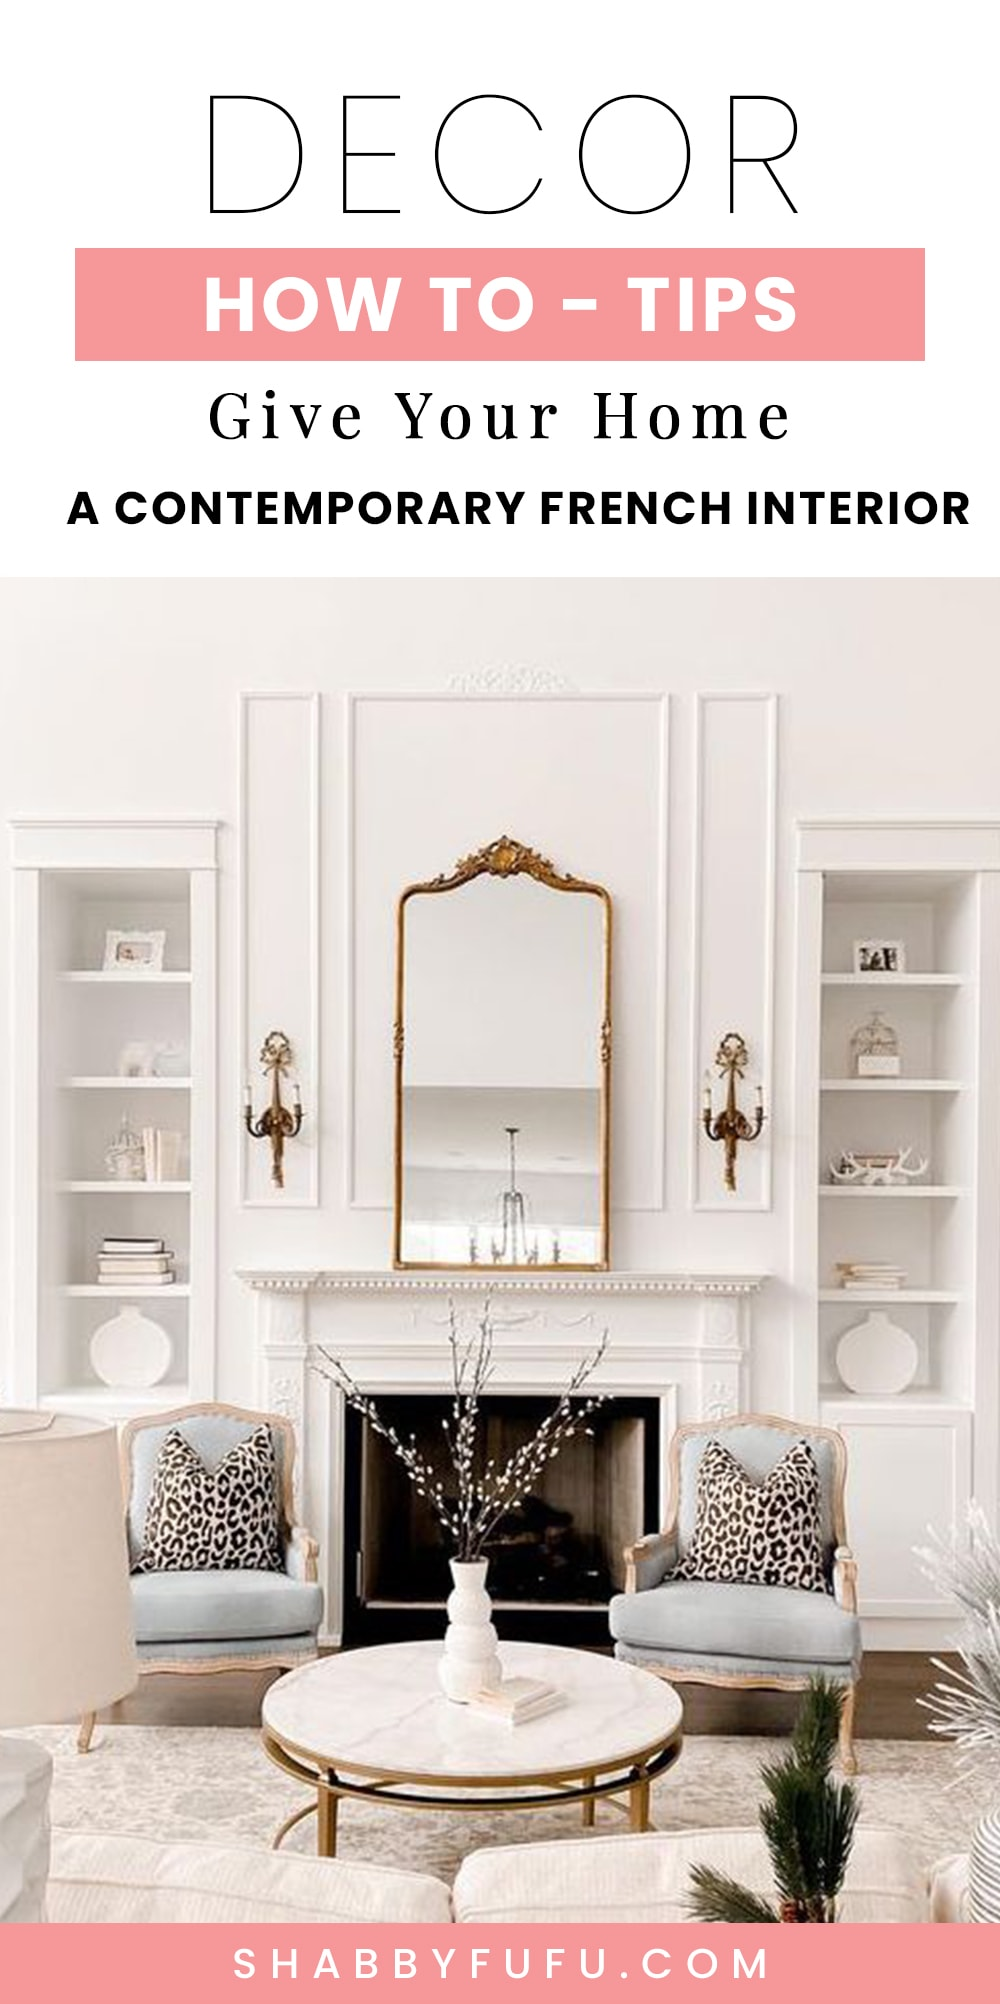 Decorating Tips - How To Give Your Home A Contemporary French Interior